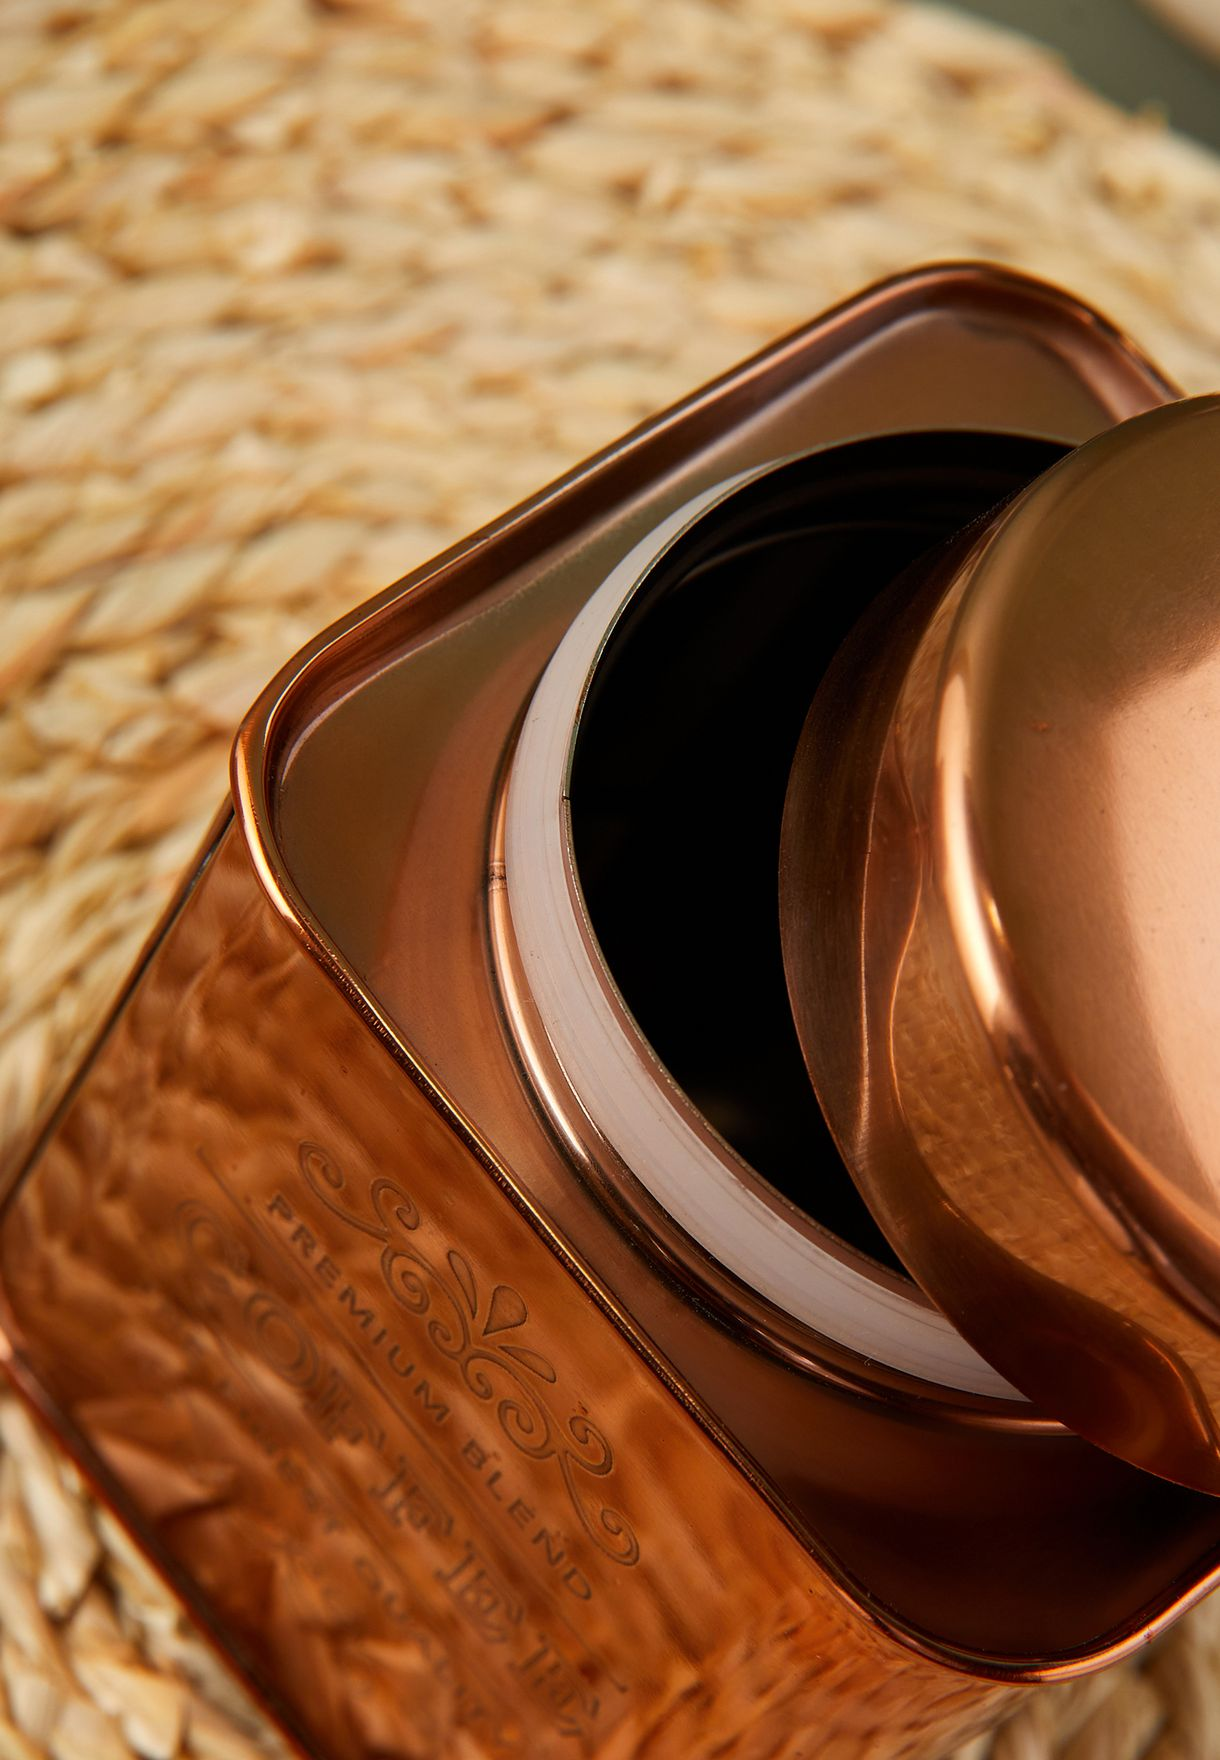 Copper Finish Coffee Canister